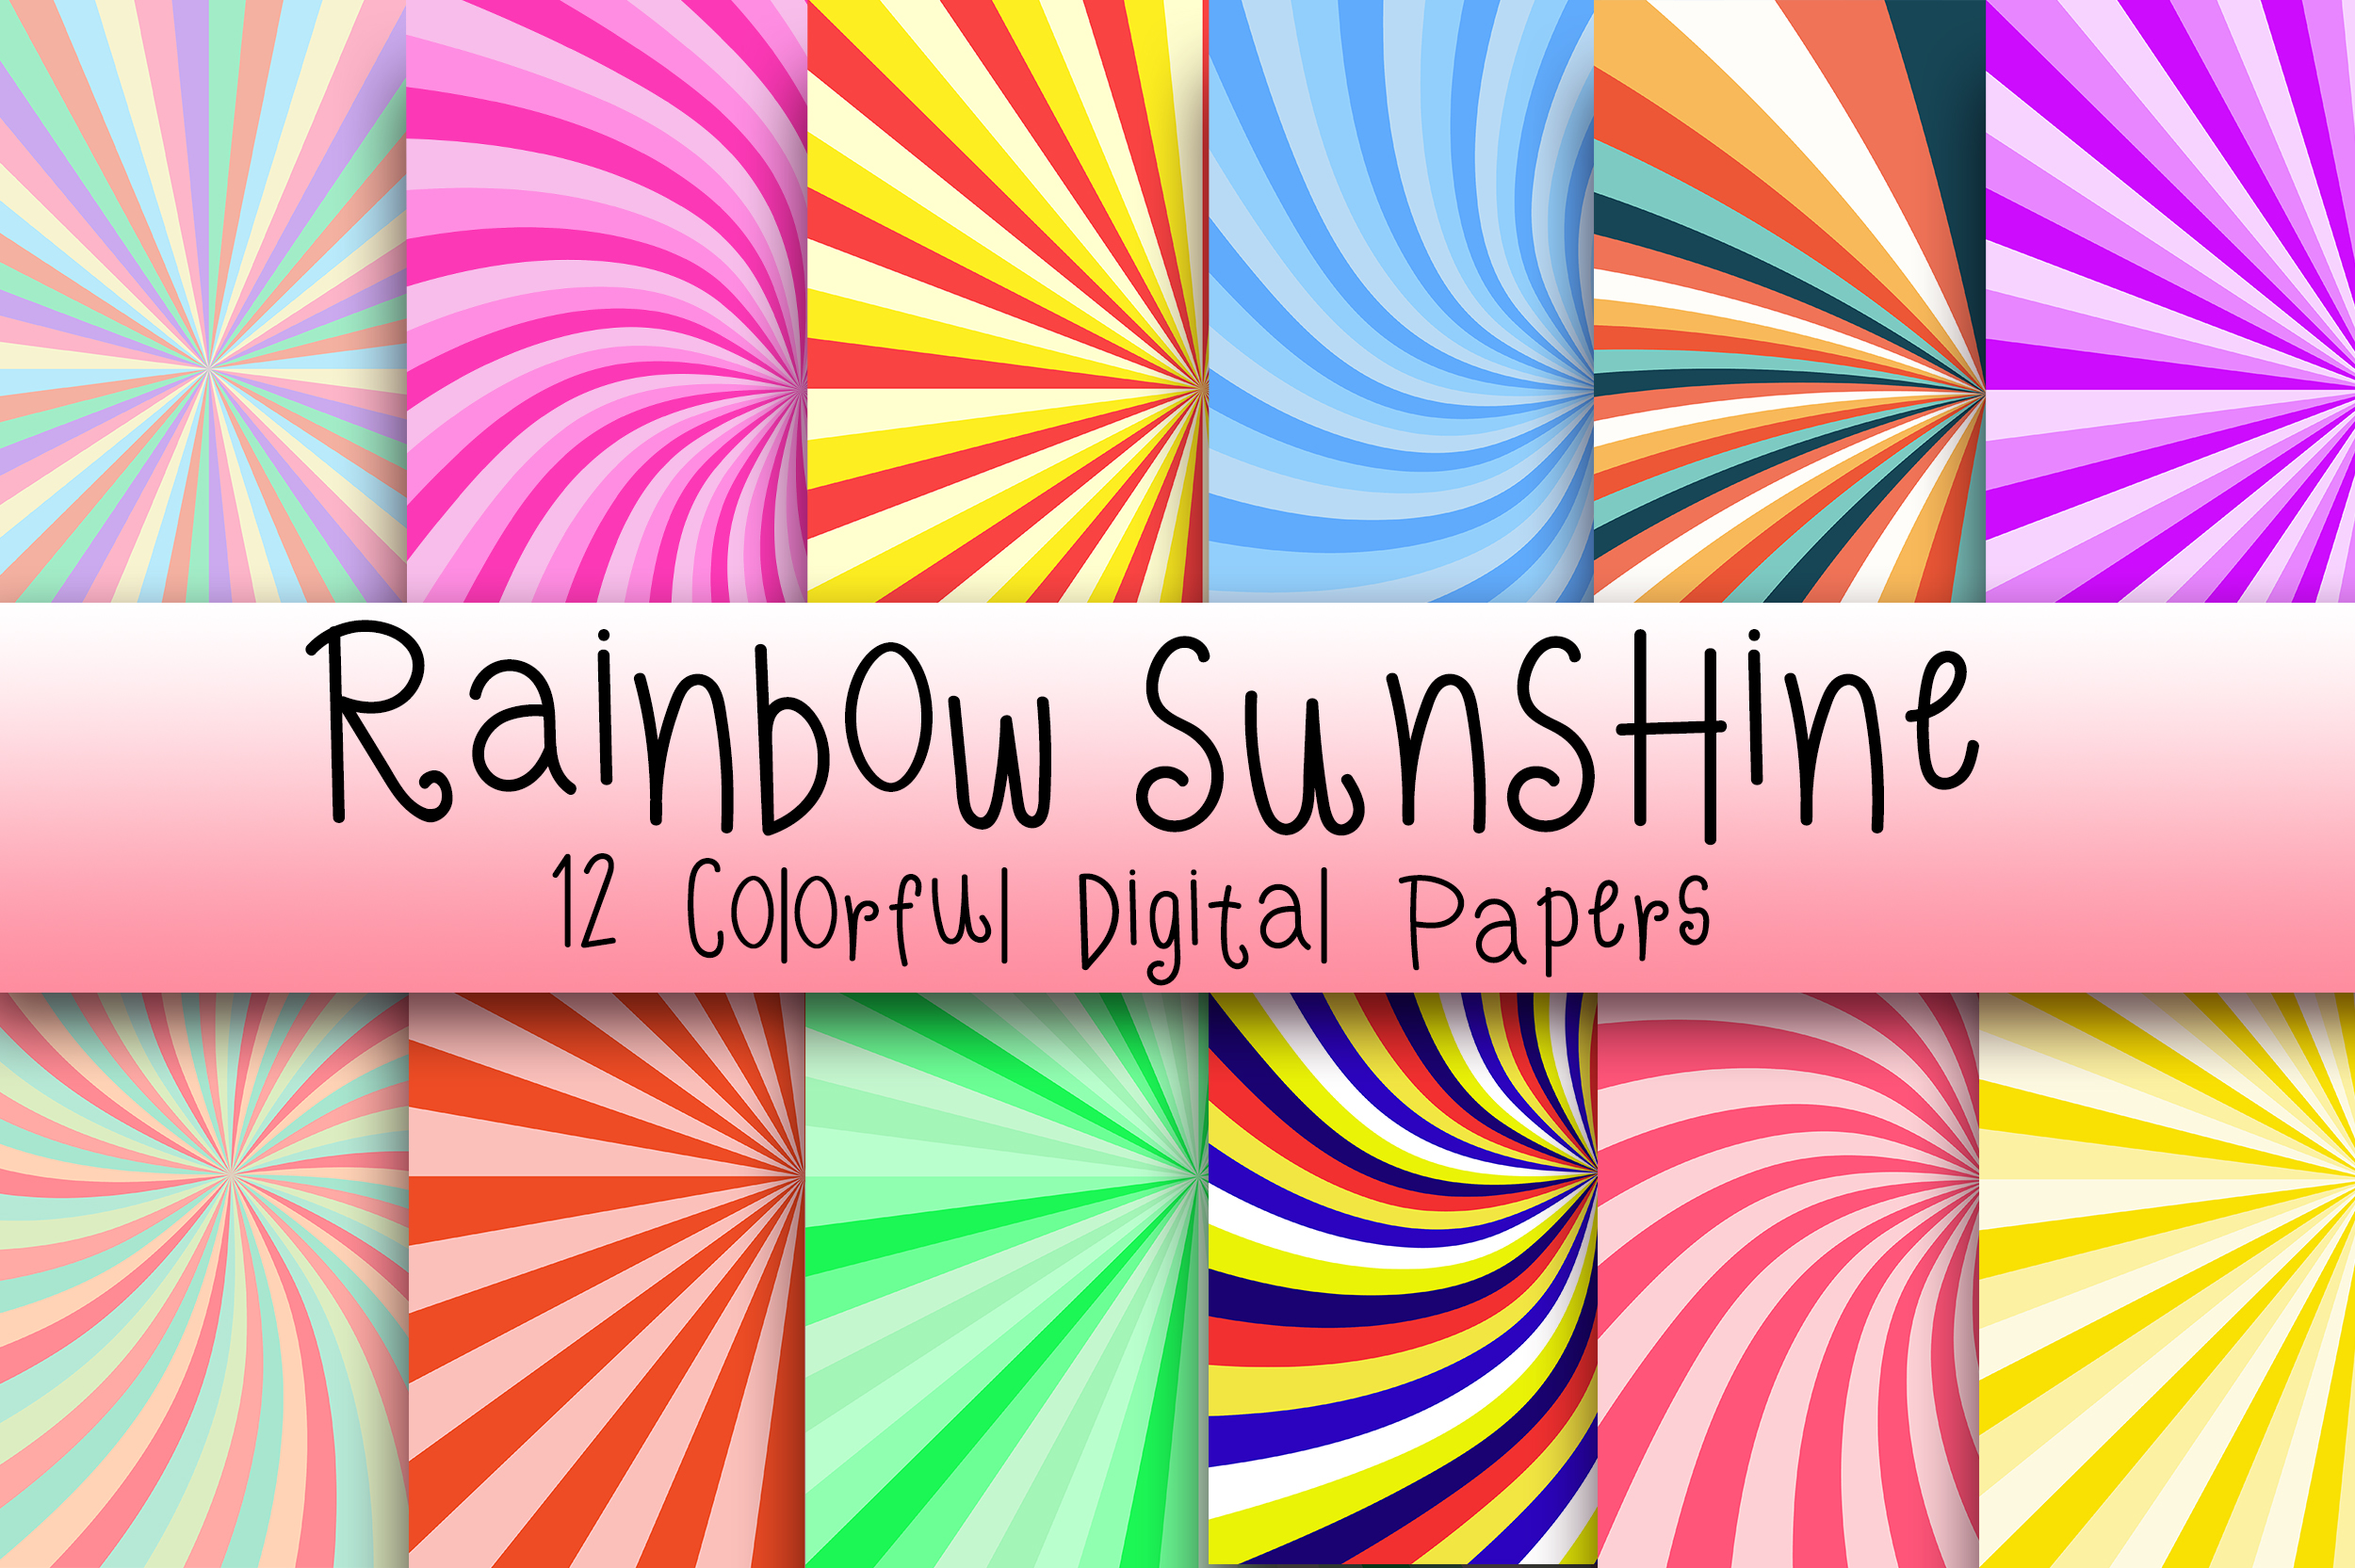 Download Free Rainbow Sunshine Digital Papers Graphic By Pinkpearly Creative for Cricut Explore, Silhouette and other cutting machines.